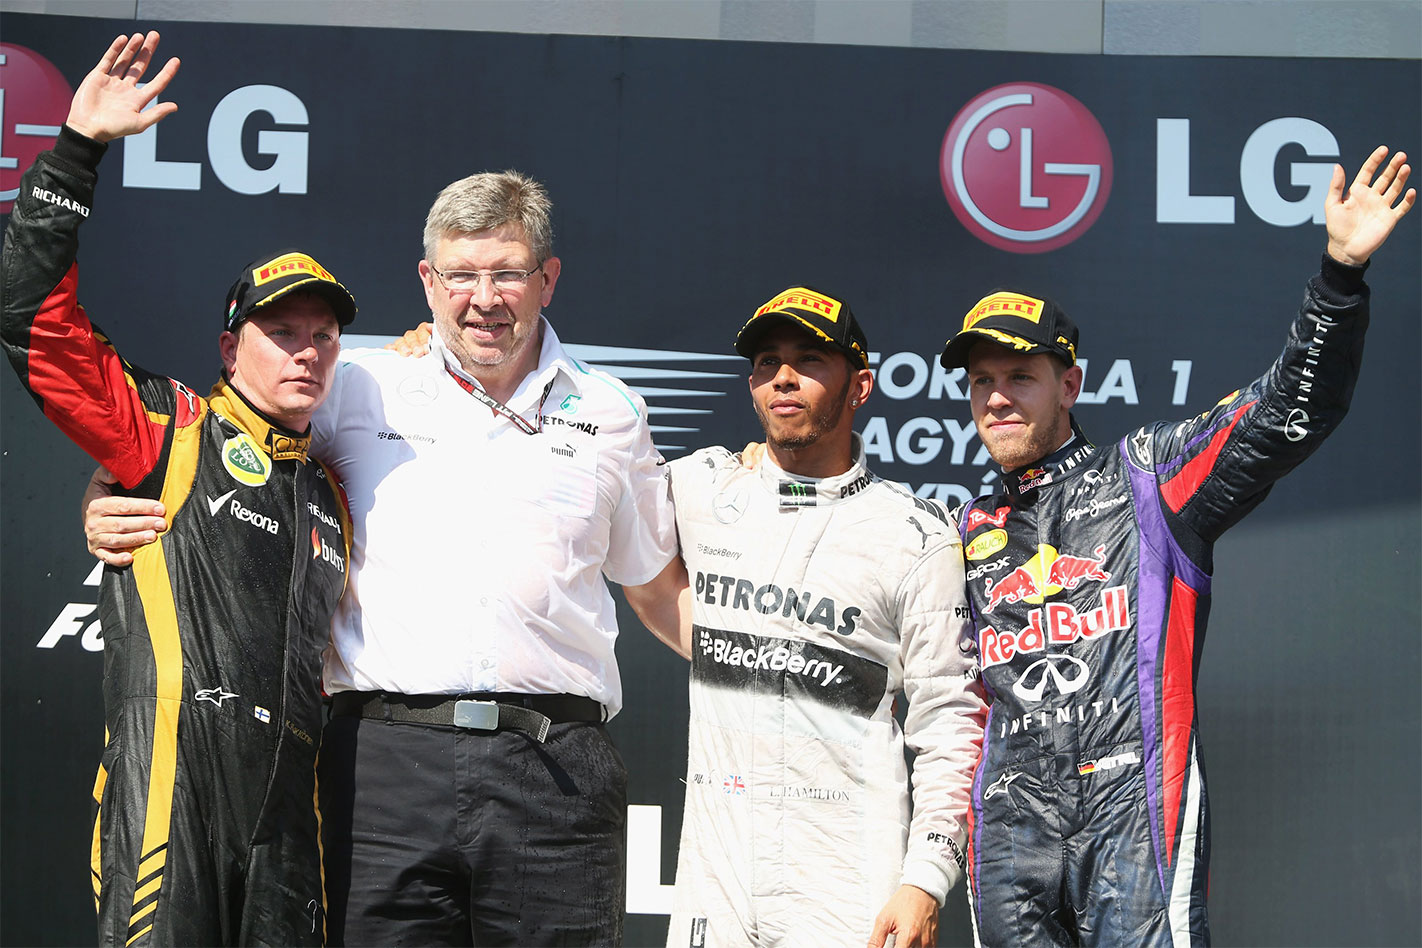 Ross Brawn podium